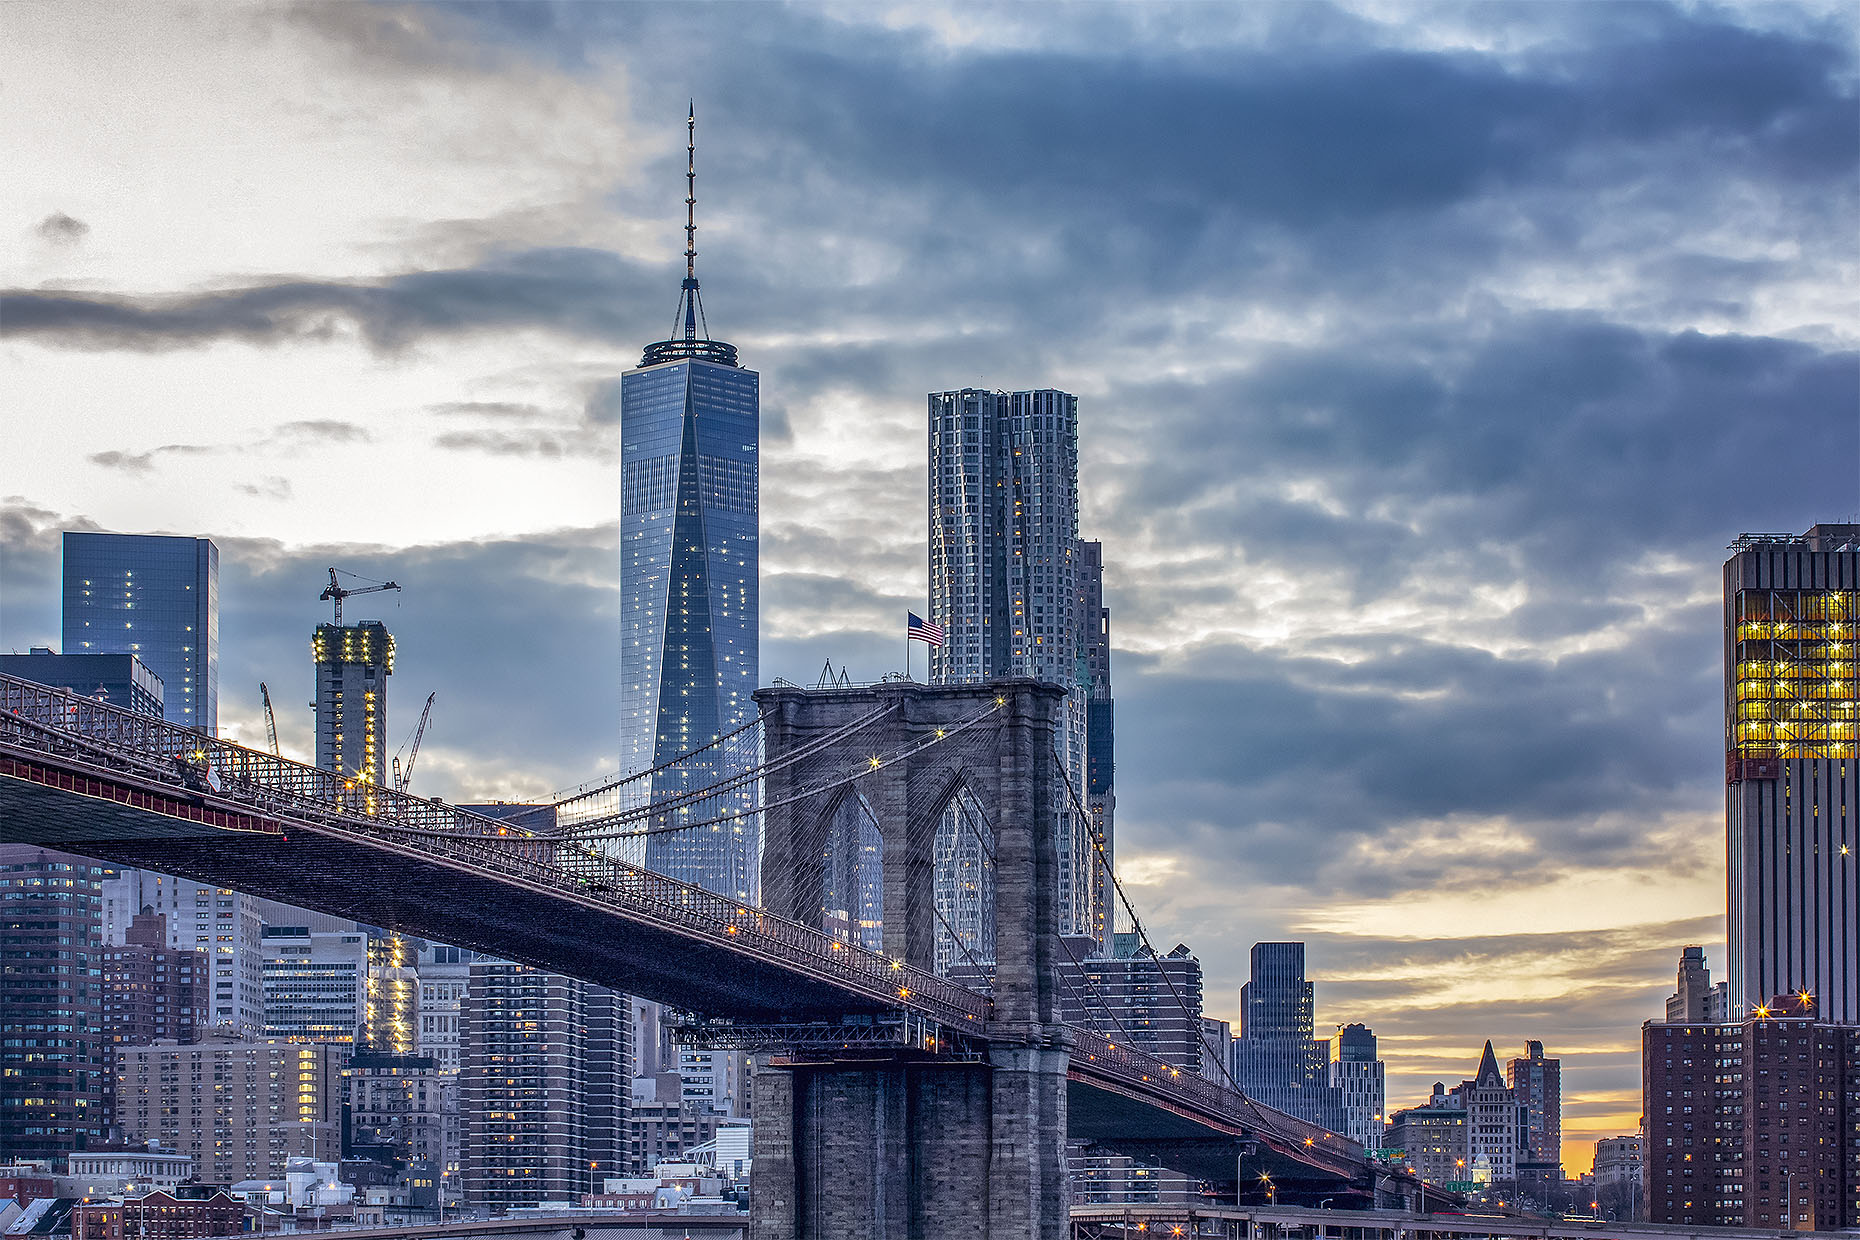 BrooklynBridge_twilight-s_webuse.jpg